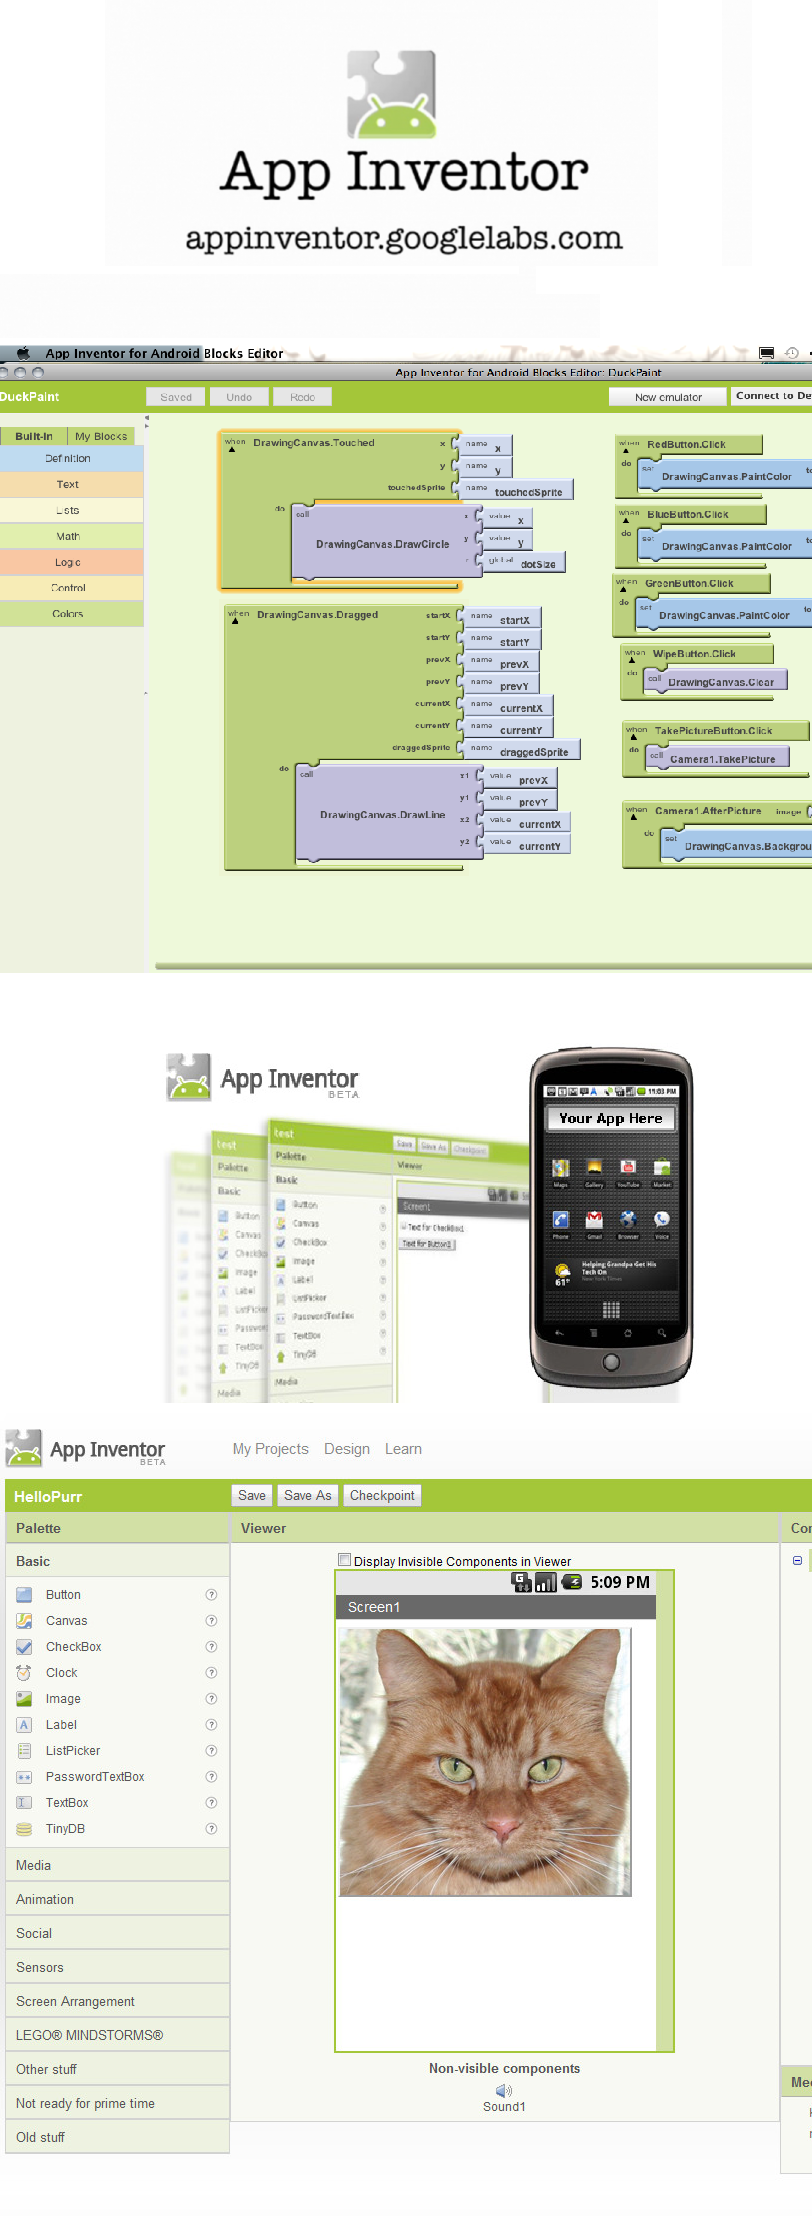 Google App inventor is a tool that enables app development